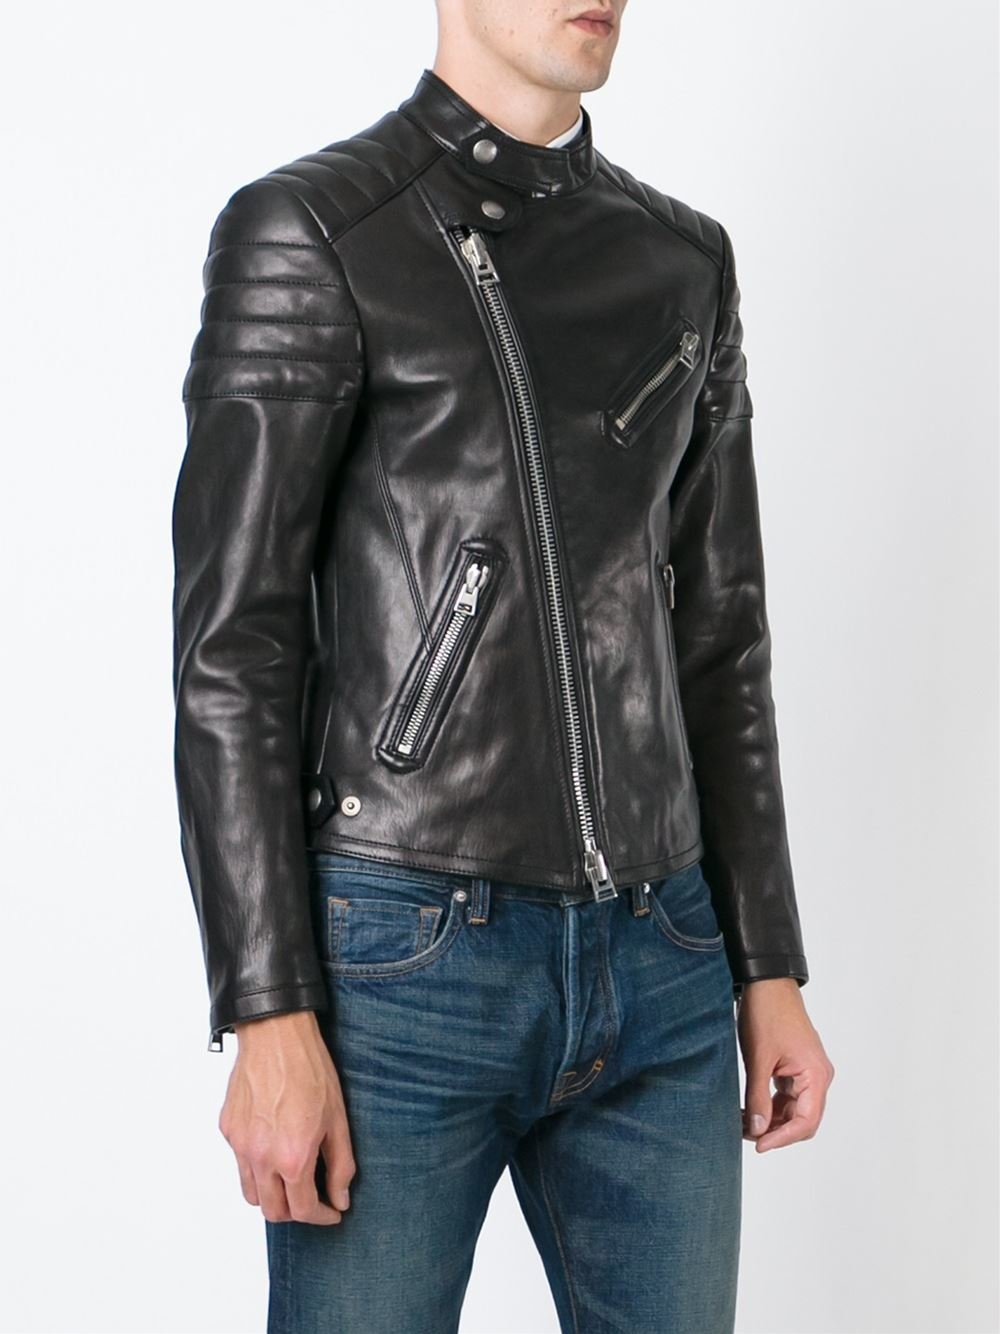 tom ford padded shoulder biker jacket in black for men lyst. Black Bedroom Furniture Sets. Home Design Ideas